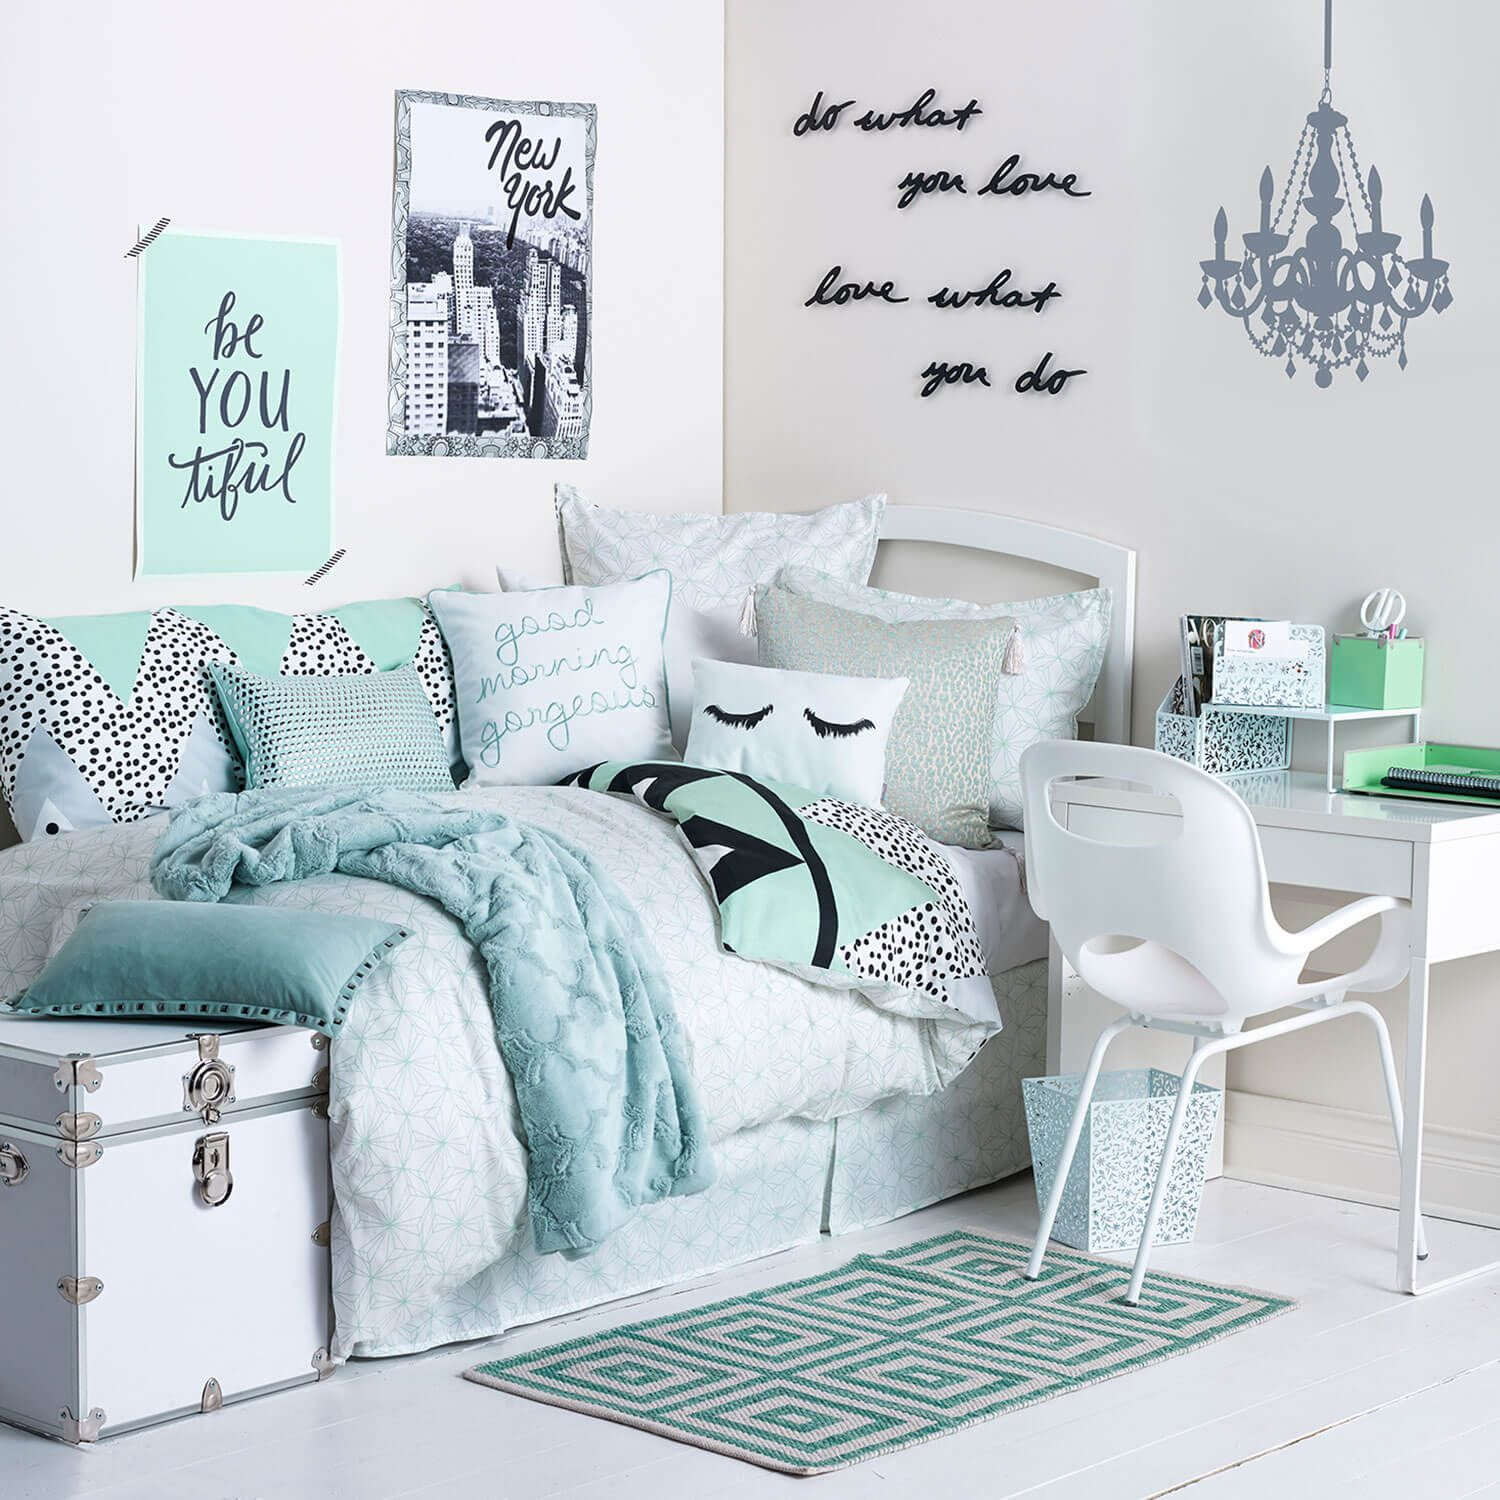 Pin on Koraya\'s New Room Ideas